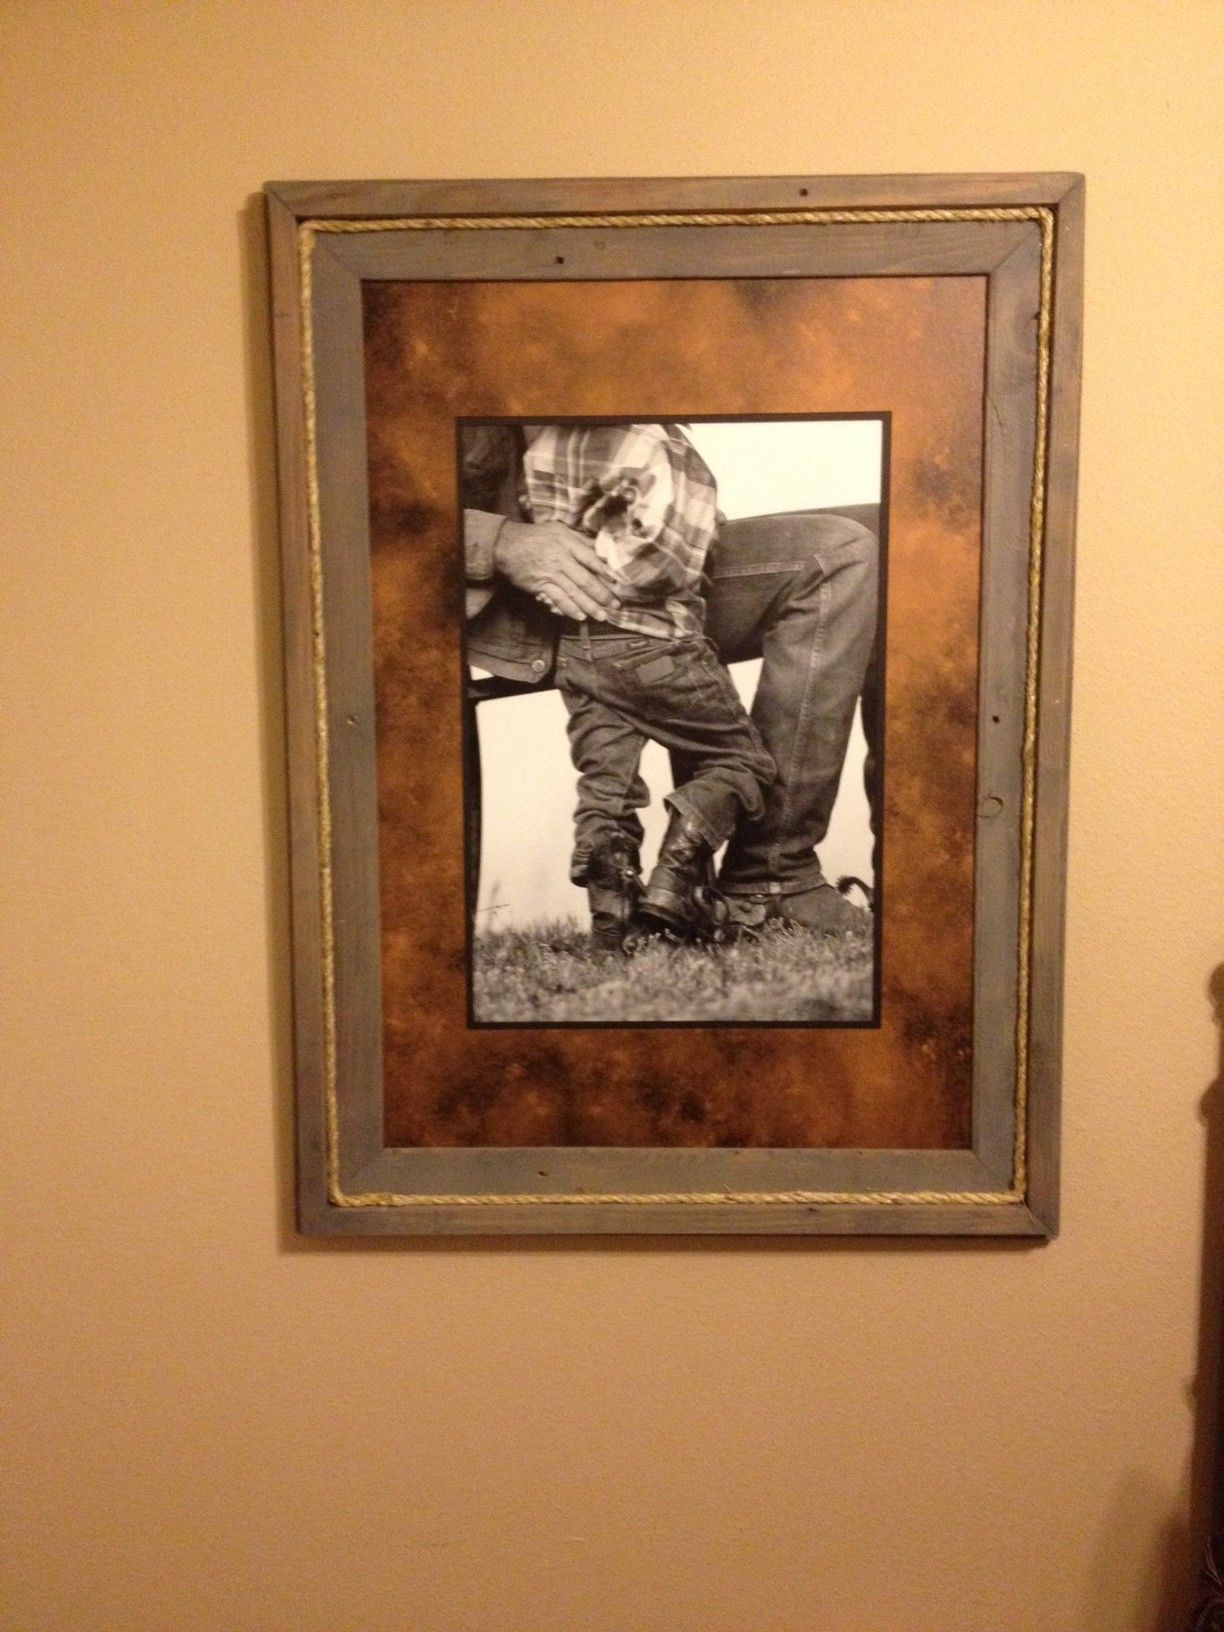 Tin Star Furniture In Denison TX Supplied The Picture And Matte For This  Custom Frame.